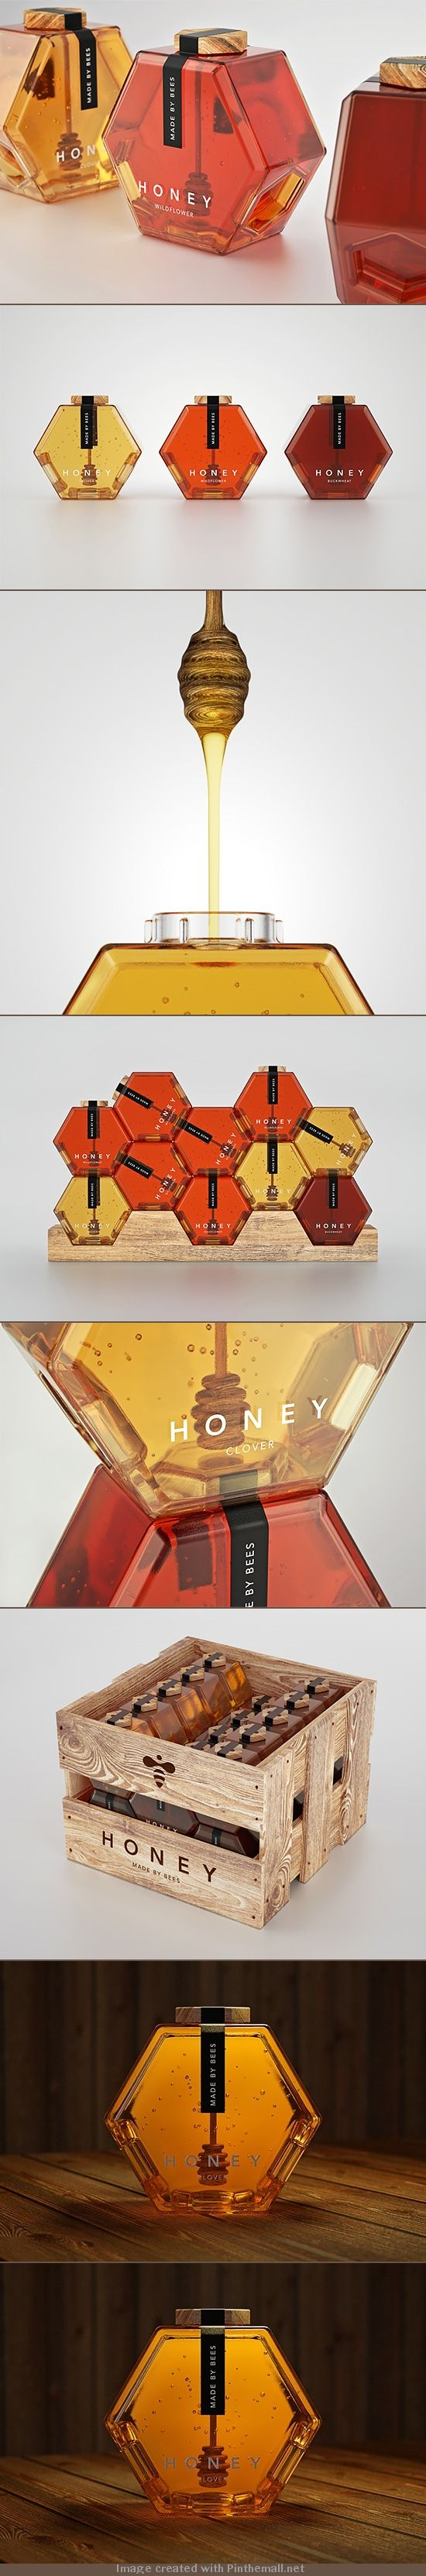 Honey Packaging Concept by Maksim Arbuzov Russian designer Maksim Arbuzov created this gorgeous honey packaging concept inspired by the simple geometric forms of honeycombs. via The Design Ark Source : http://theinspirationgrid.com/honey-packaging